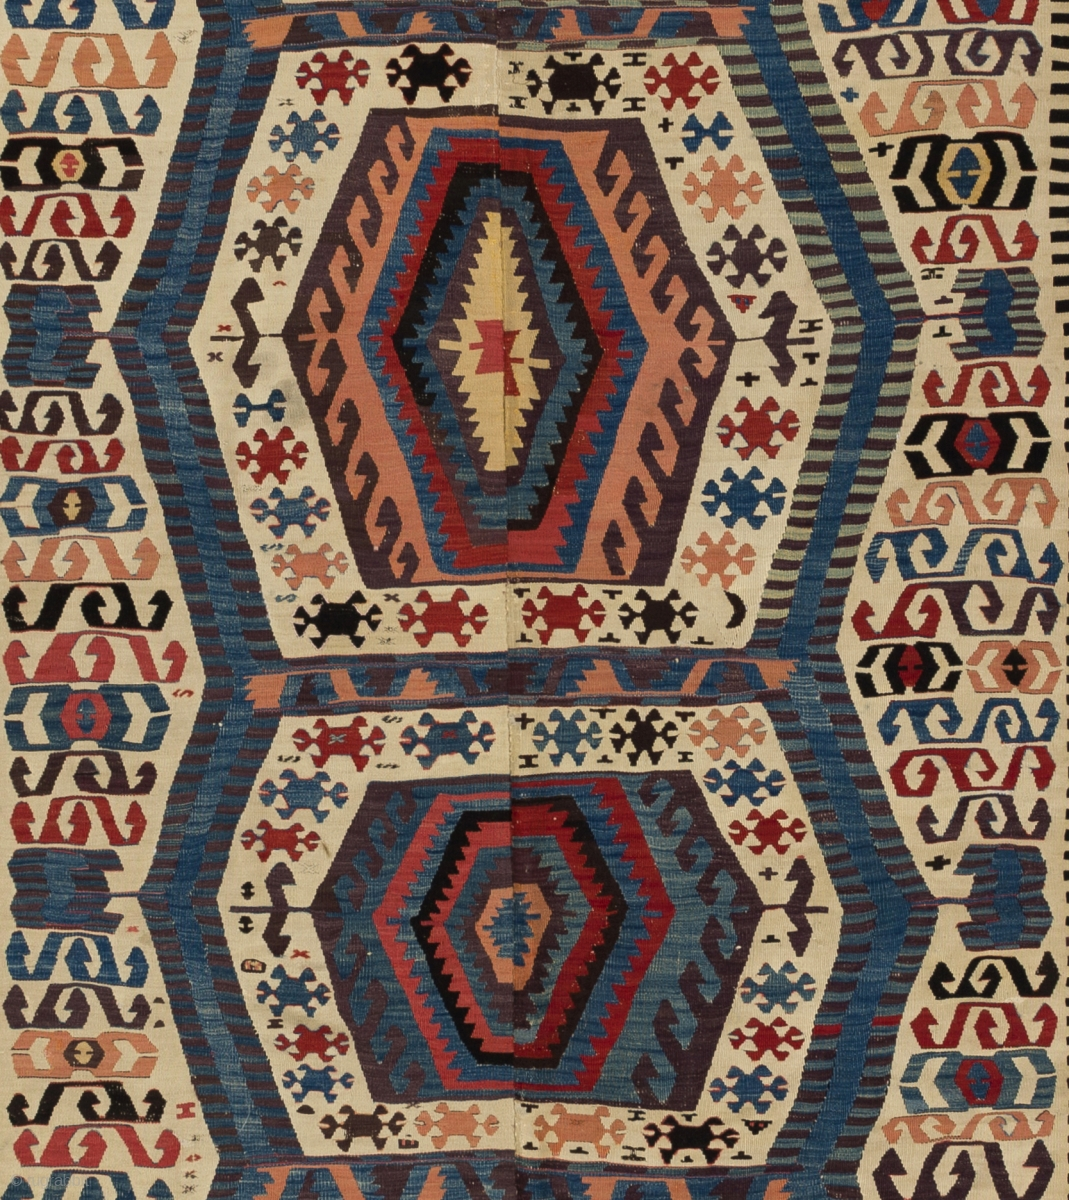 Afyon Kilim, 5 By 12 Ft (151x372 Cm), Ca 1800 Or Older, As